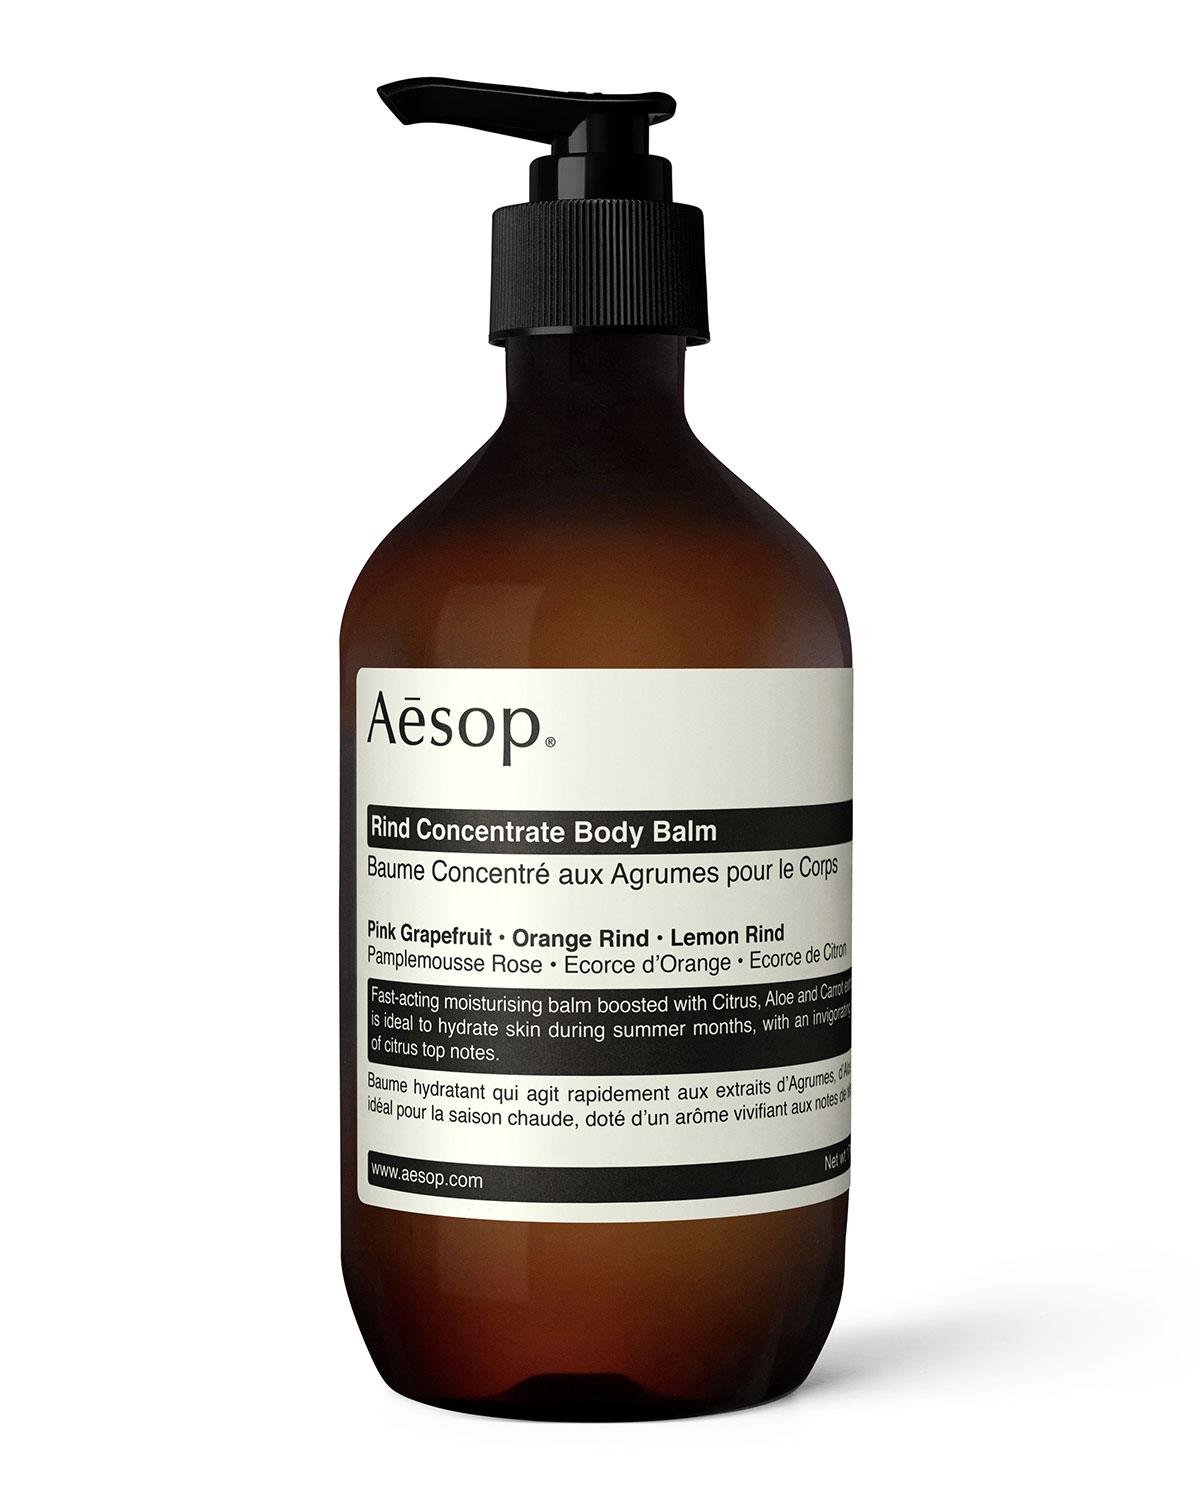 Aesop RIND CONCENTRATE BODY BALM, 16.9 OZ./ 500 ML